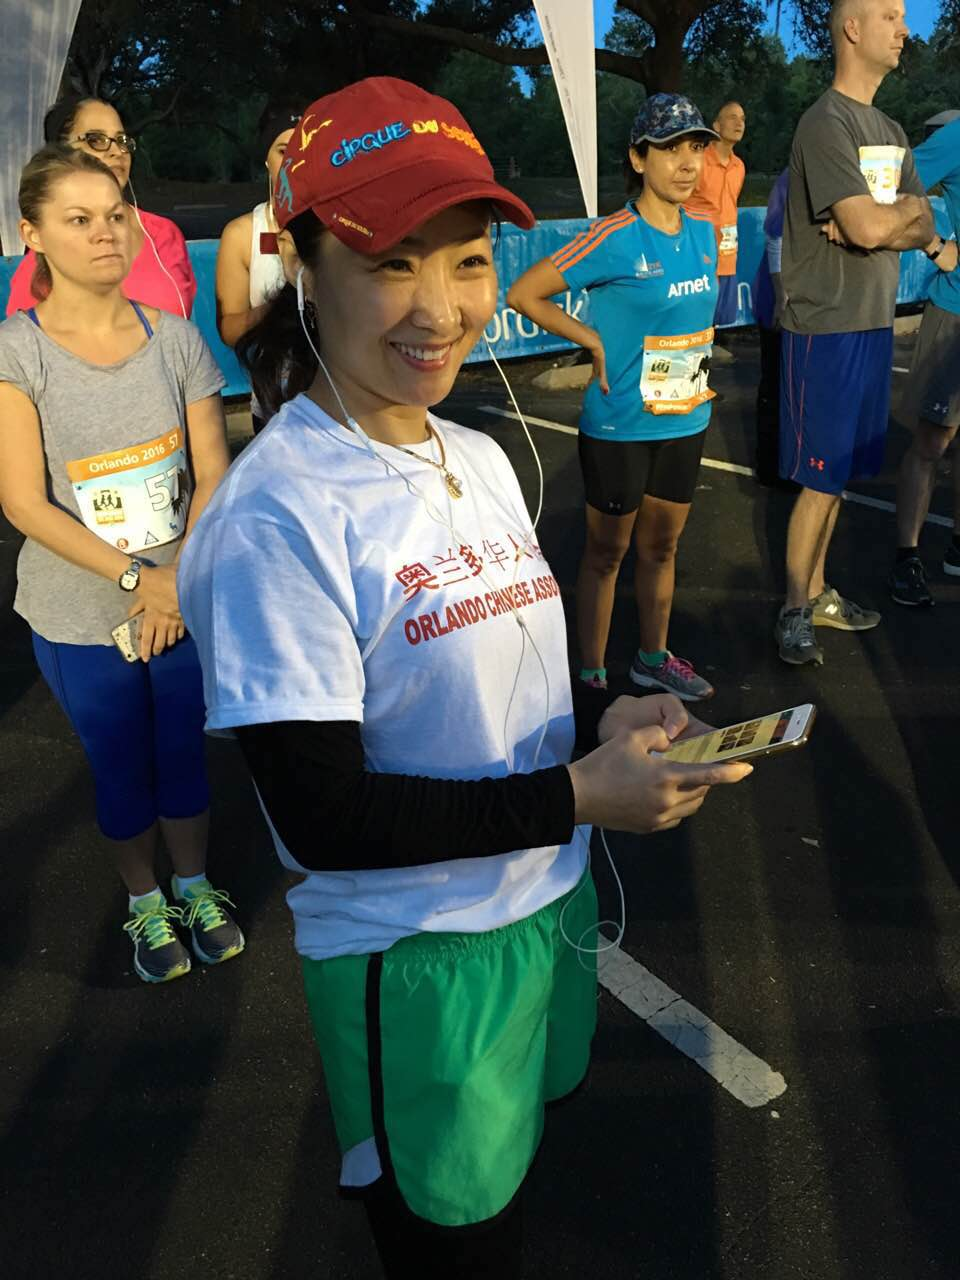 奥兰多华人协会 Orlando Chinese Association Empower 5K (16)